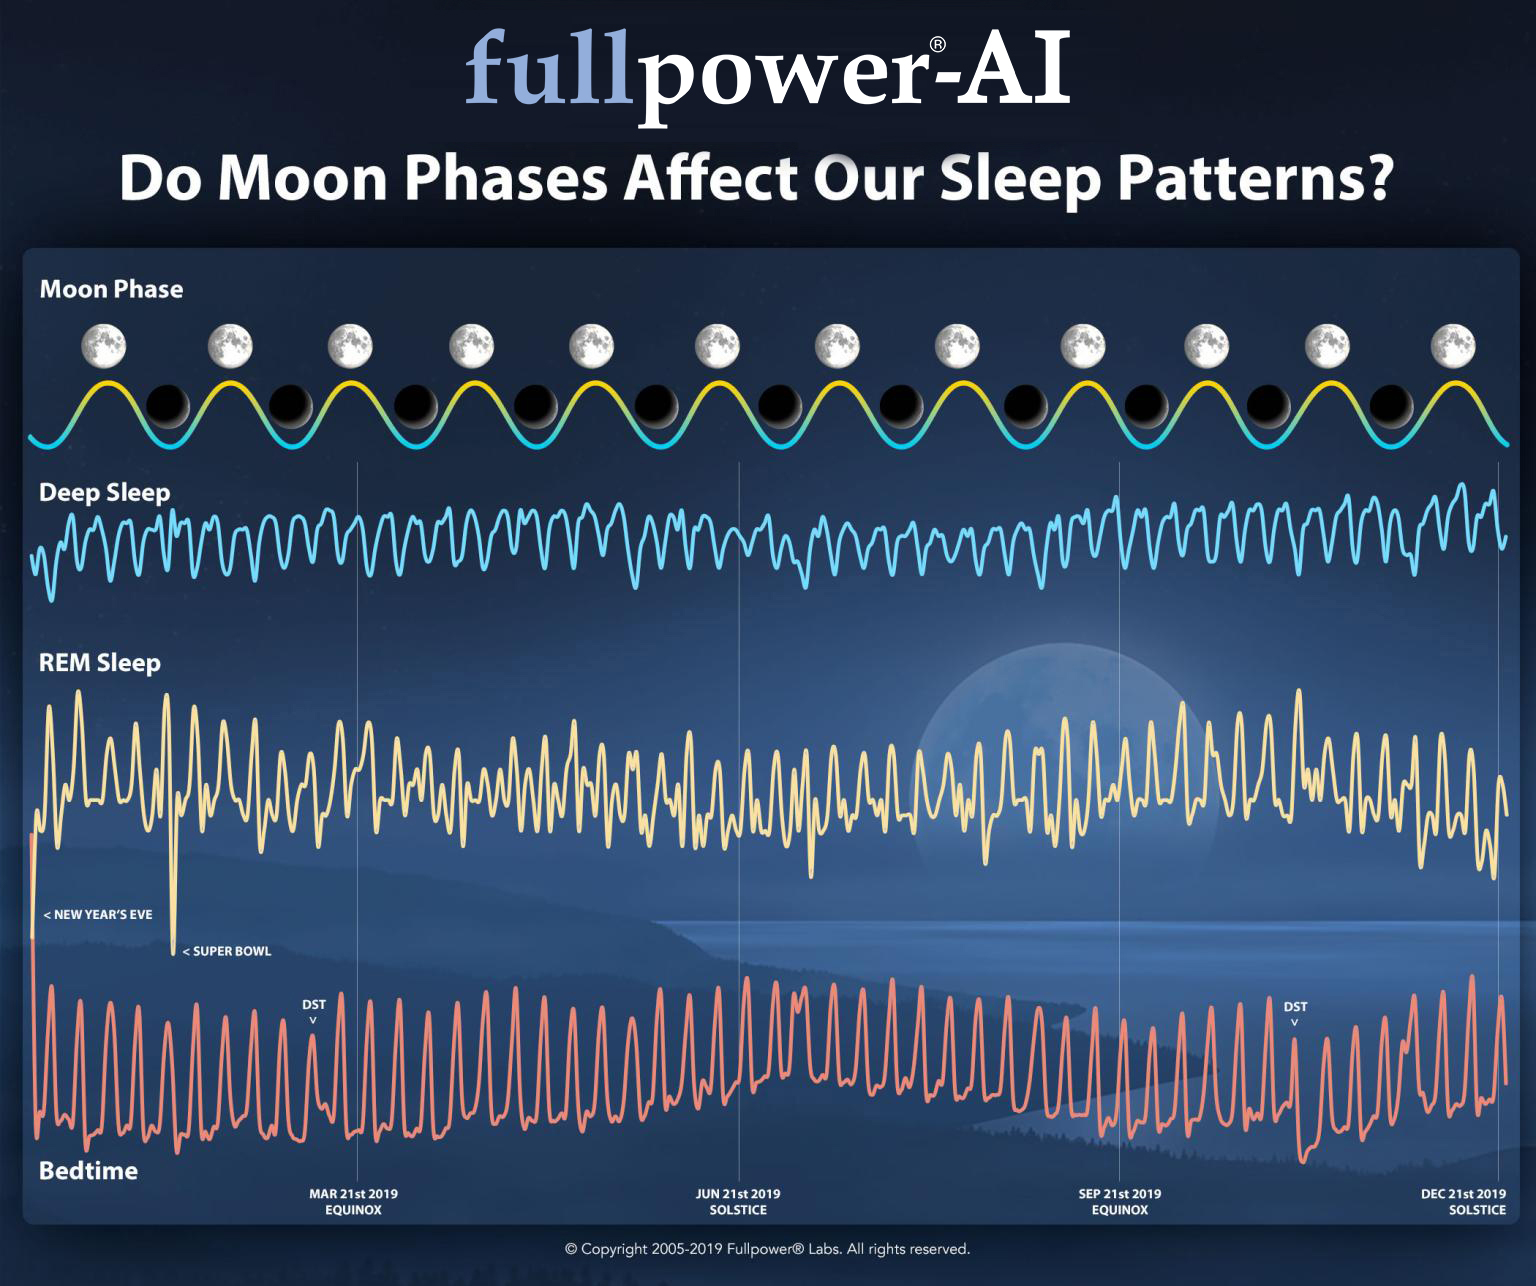 Do Moon Phases Affect Our Sleep Patterns